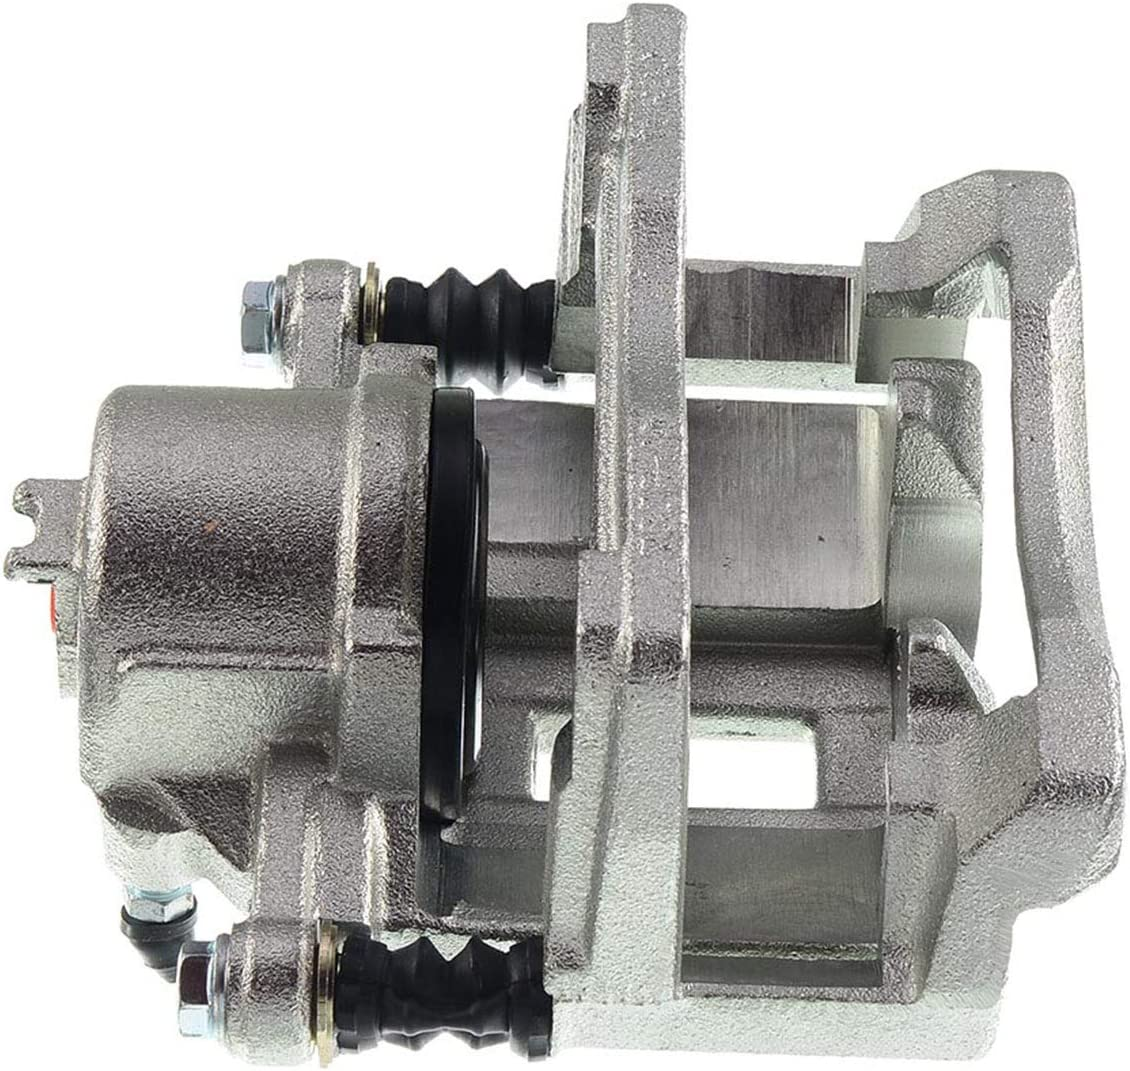 A-Premium Brake Caliper with Bracket Compatible with PT Cruiser 2003-2009 Dodge Neon 2003-2005 Front Left Driver Side